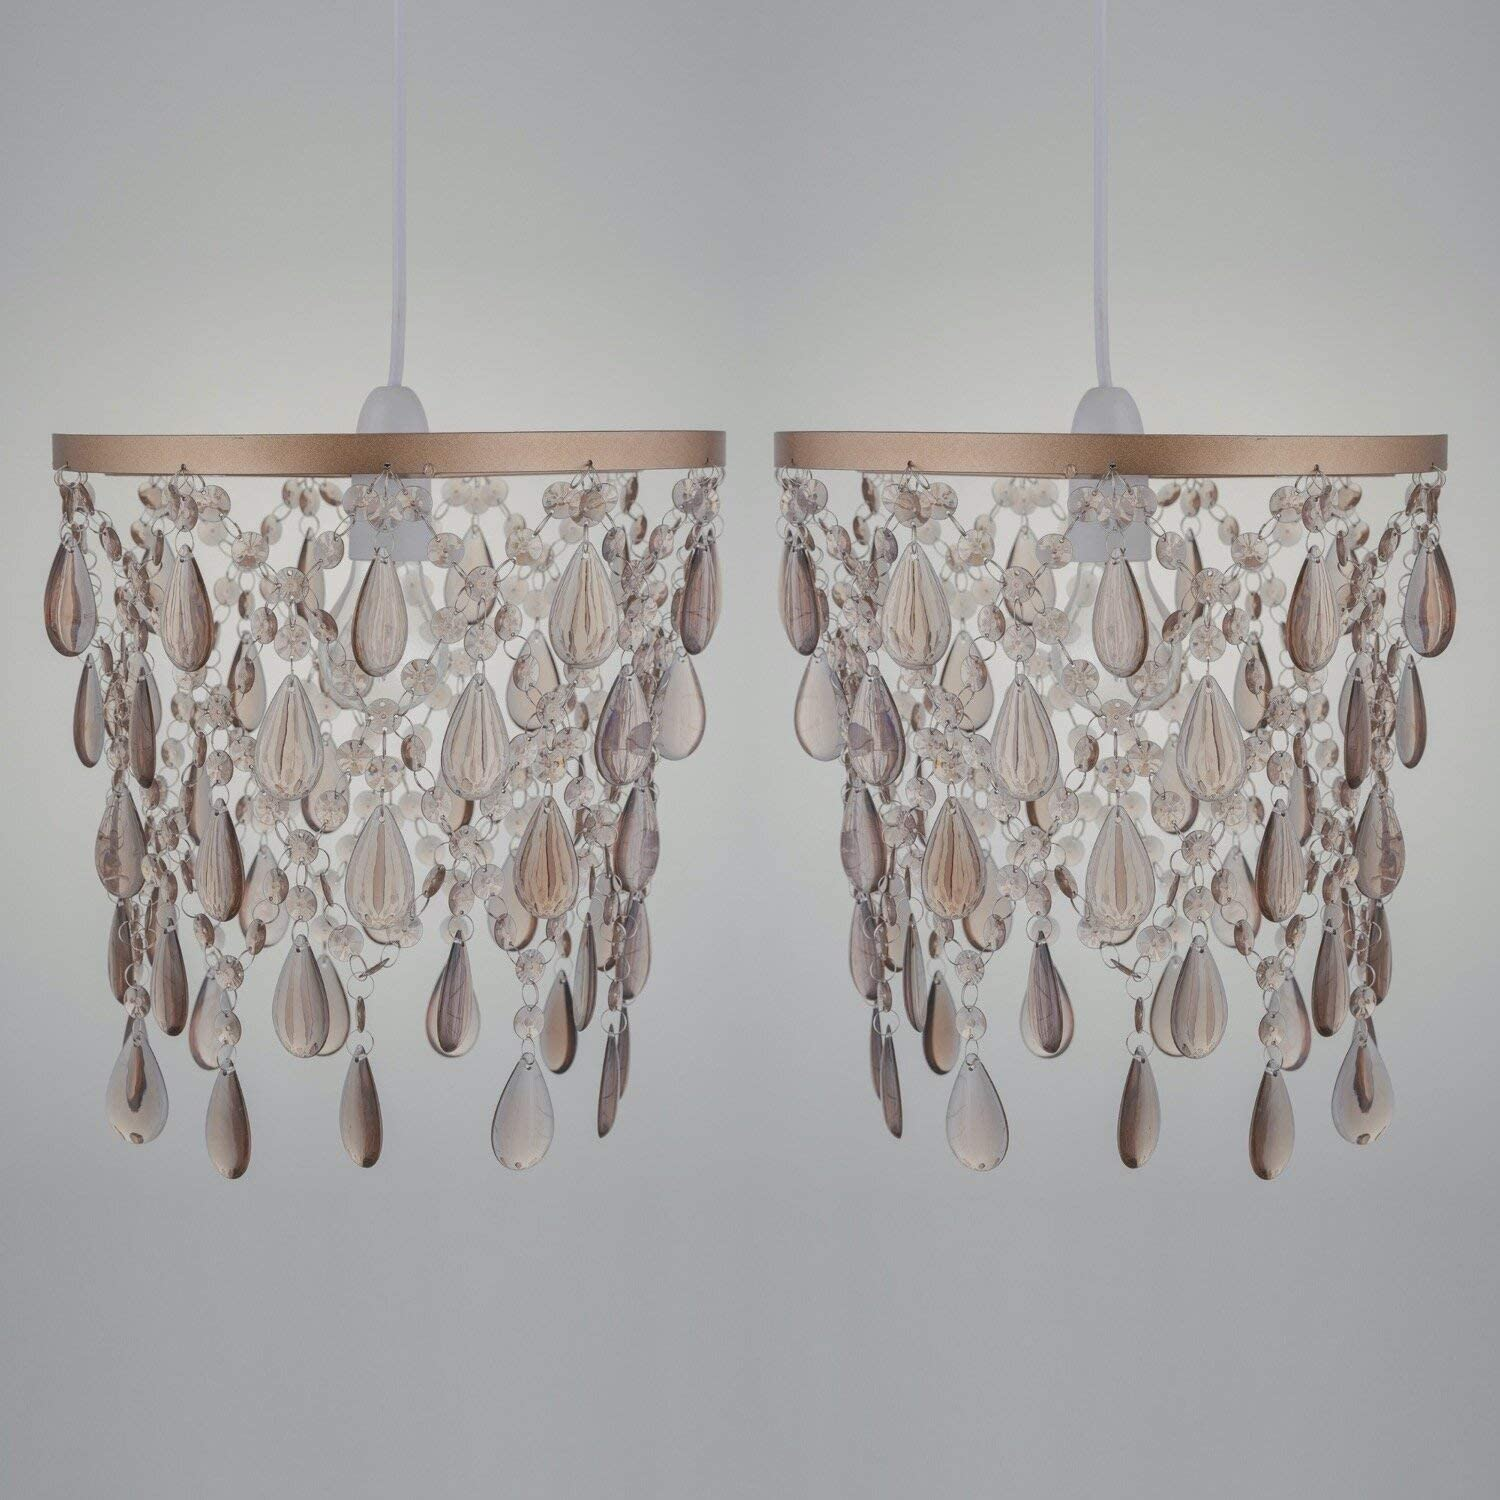 Pair Of Rose Gold Acrylic Crystal Light Shades Easy Fit Ceiling Light Shades Modern Jewelled Bedroom Light Shade No Wiring Required Height 28 Cm Diameter 28 Cm Amazon Co Uk Lighting